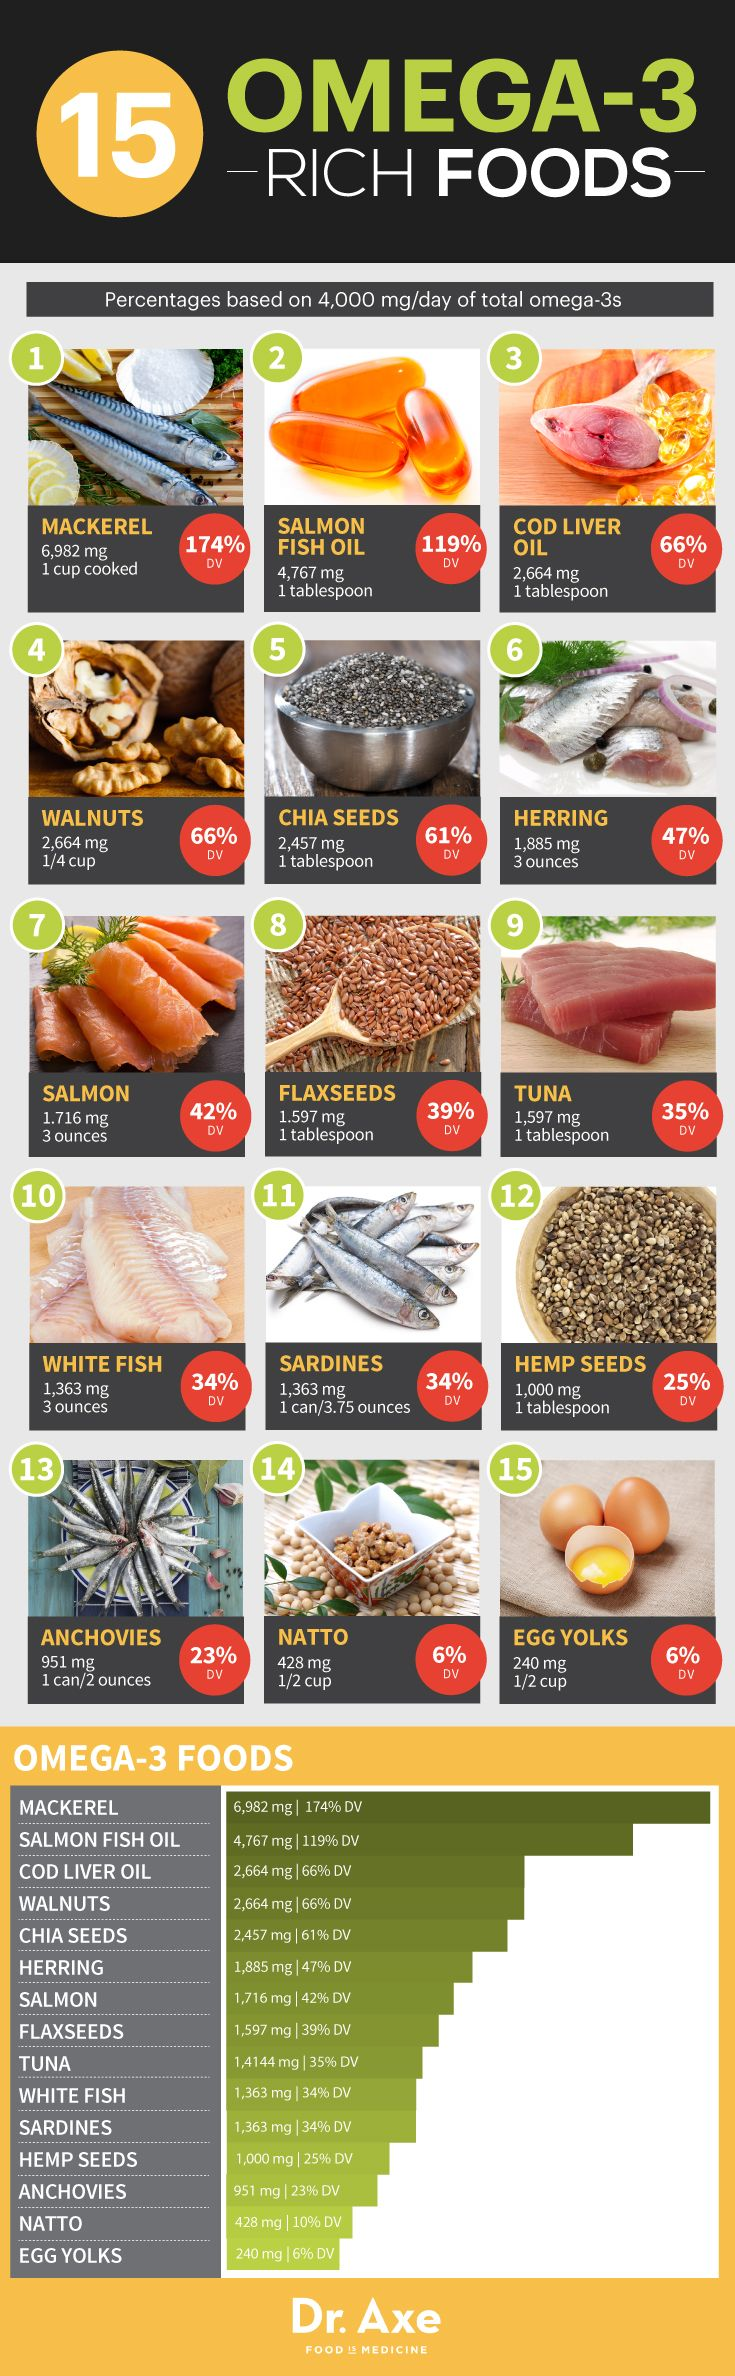 15 Omega-3 Foods Your Body Needs Now - Dr. Axe Omega-3 foods http://www.draxe.com #health #holistic #natural